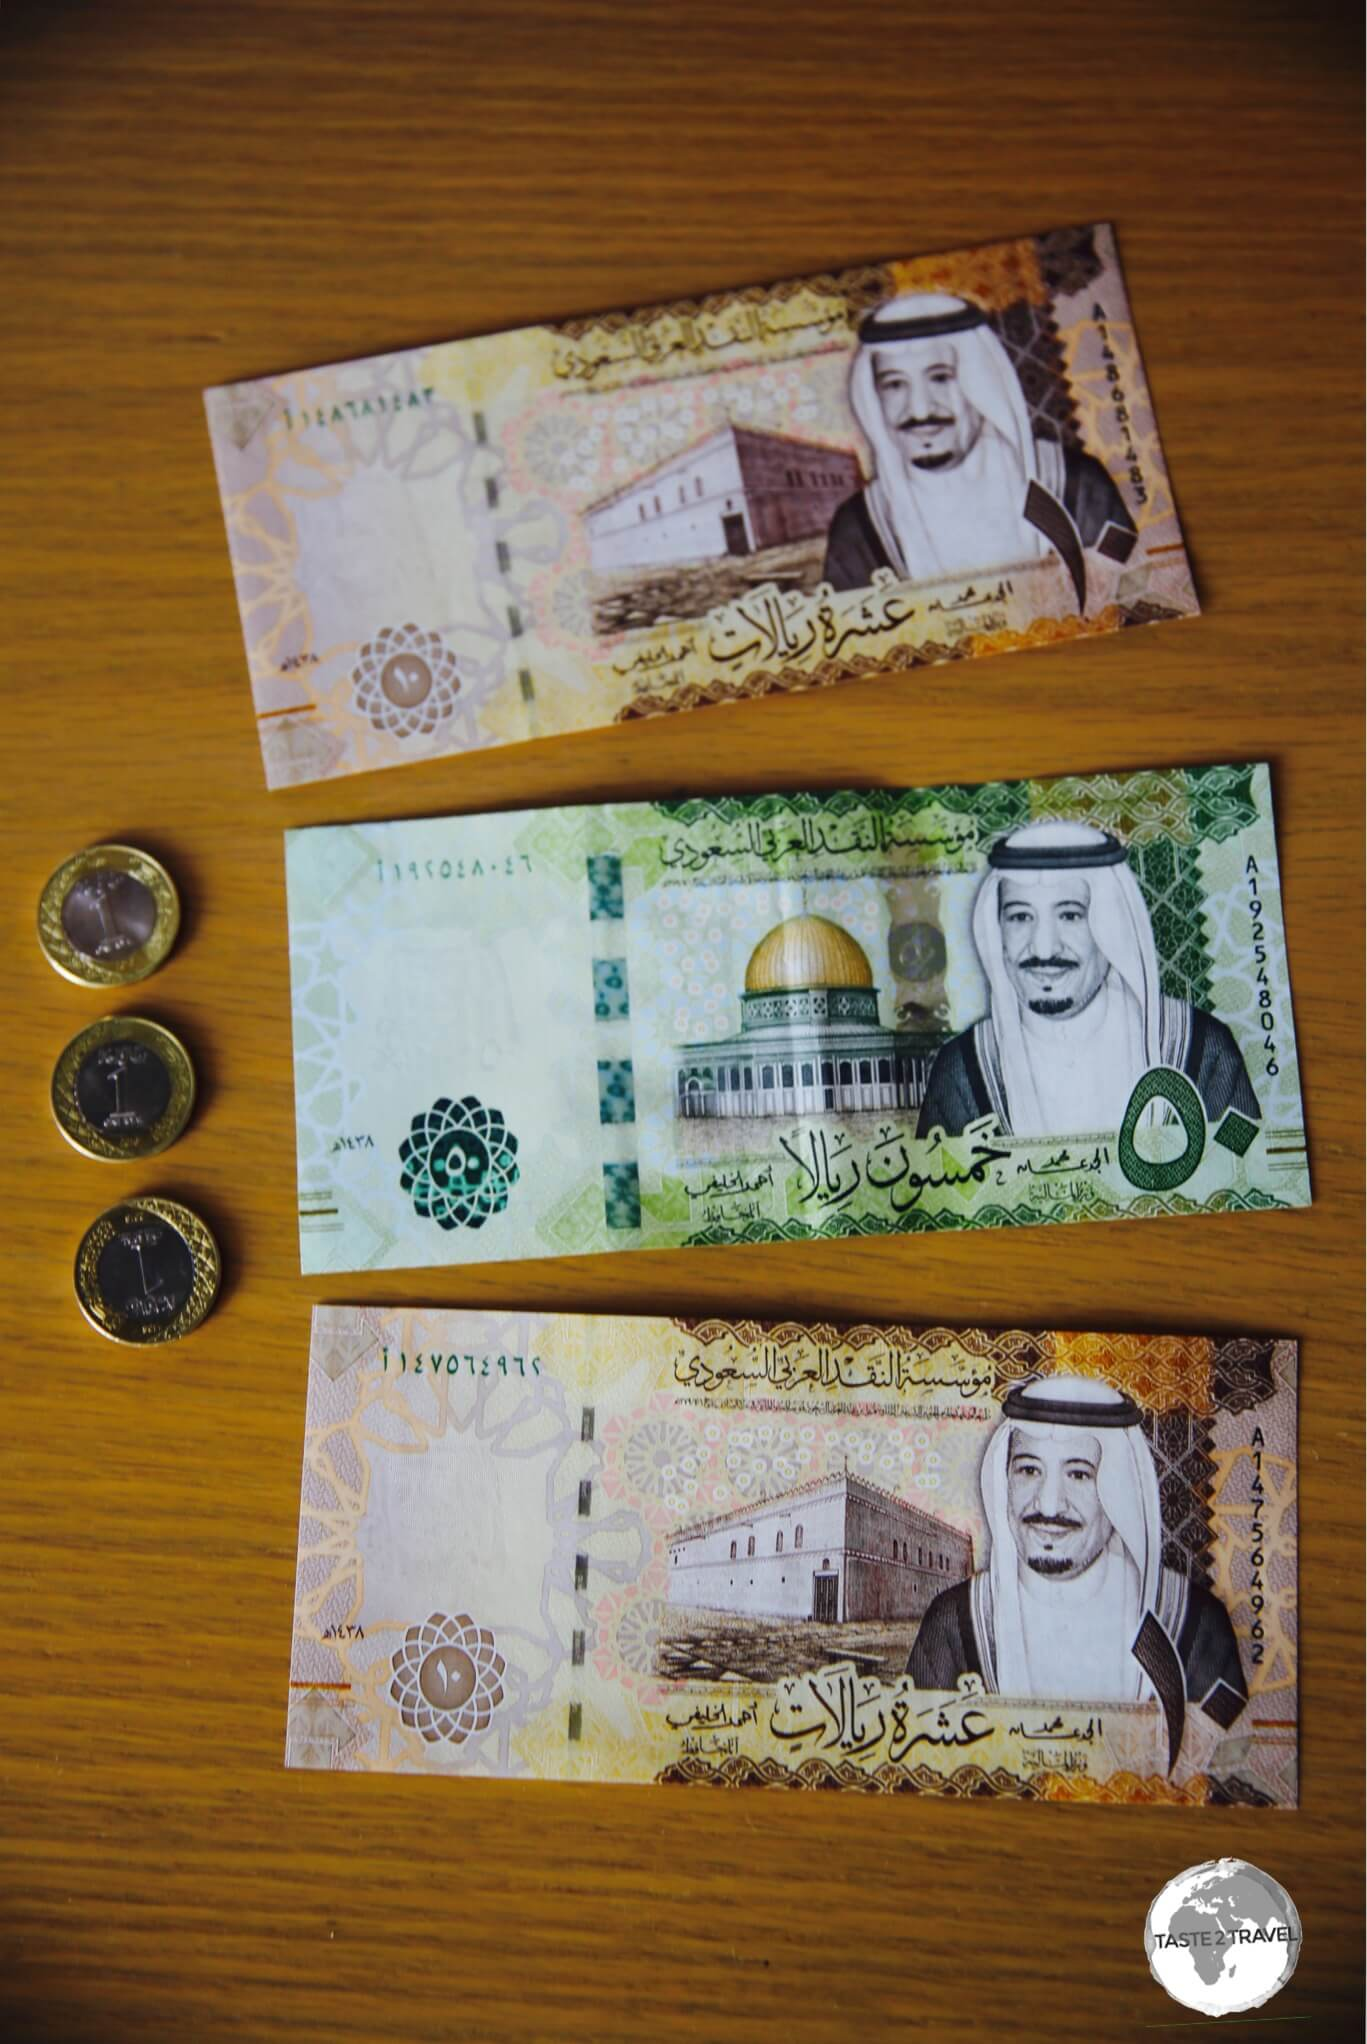 The latest series of the riyal note features the portrait of King Salman bin Abdulaziz Al Saud.